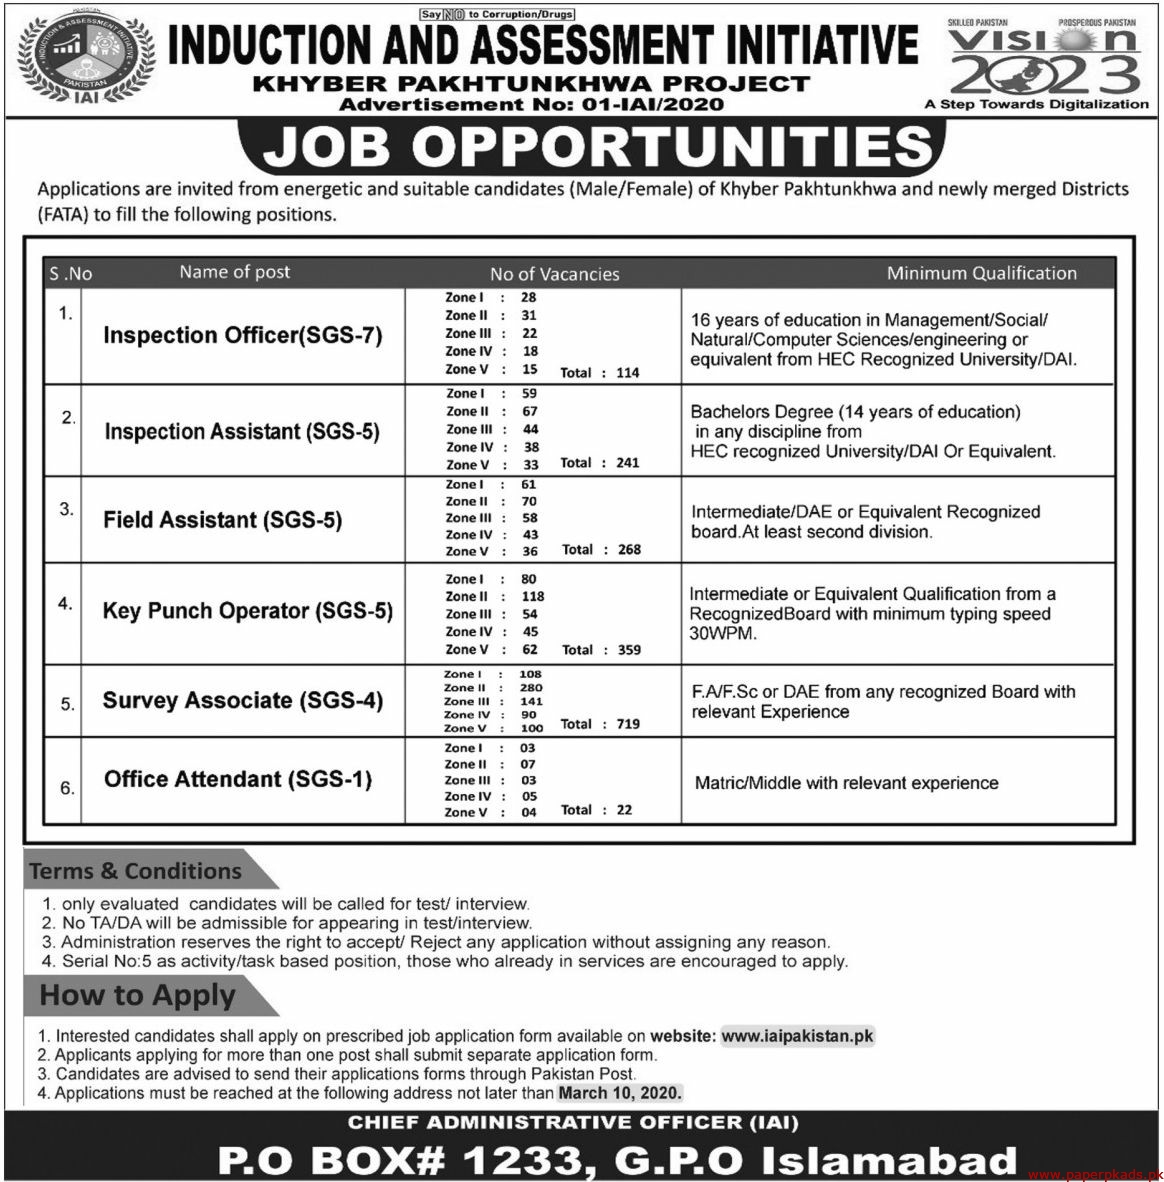 Induction and Assessment Initiative KPK Jobs 2020 Latest